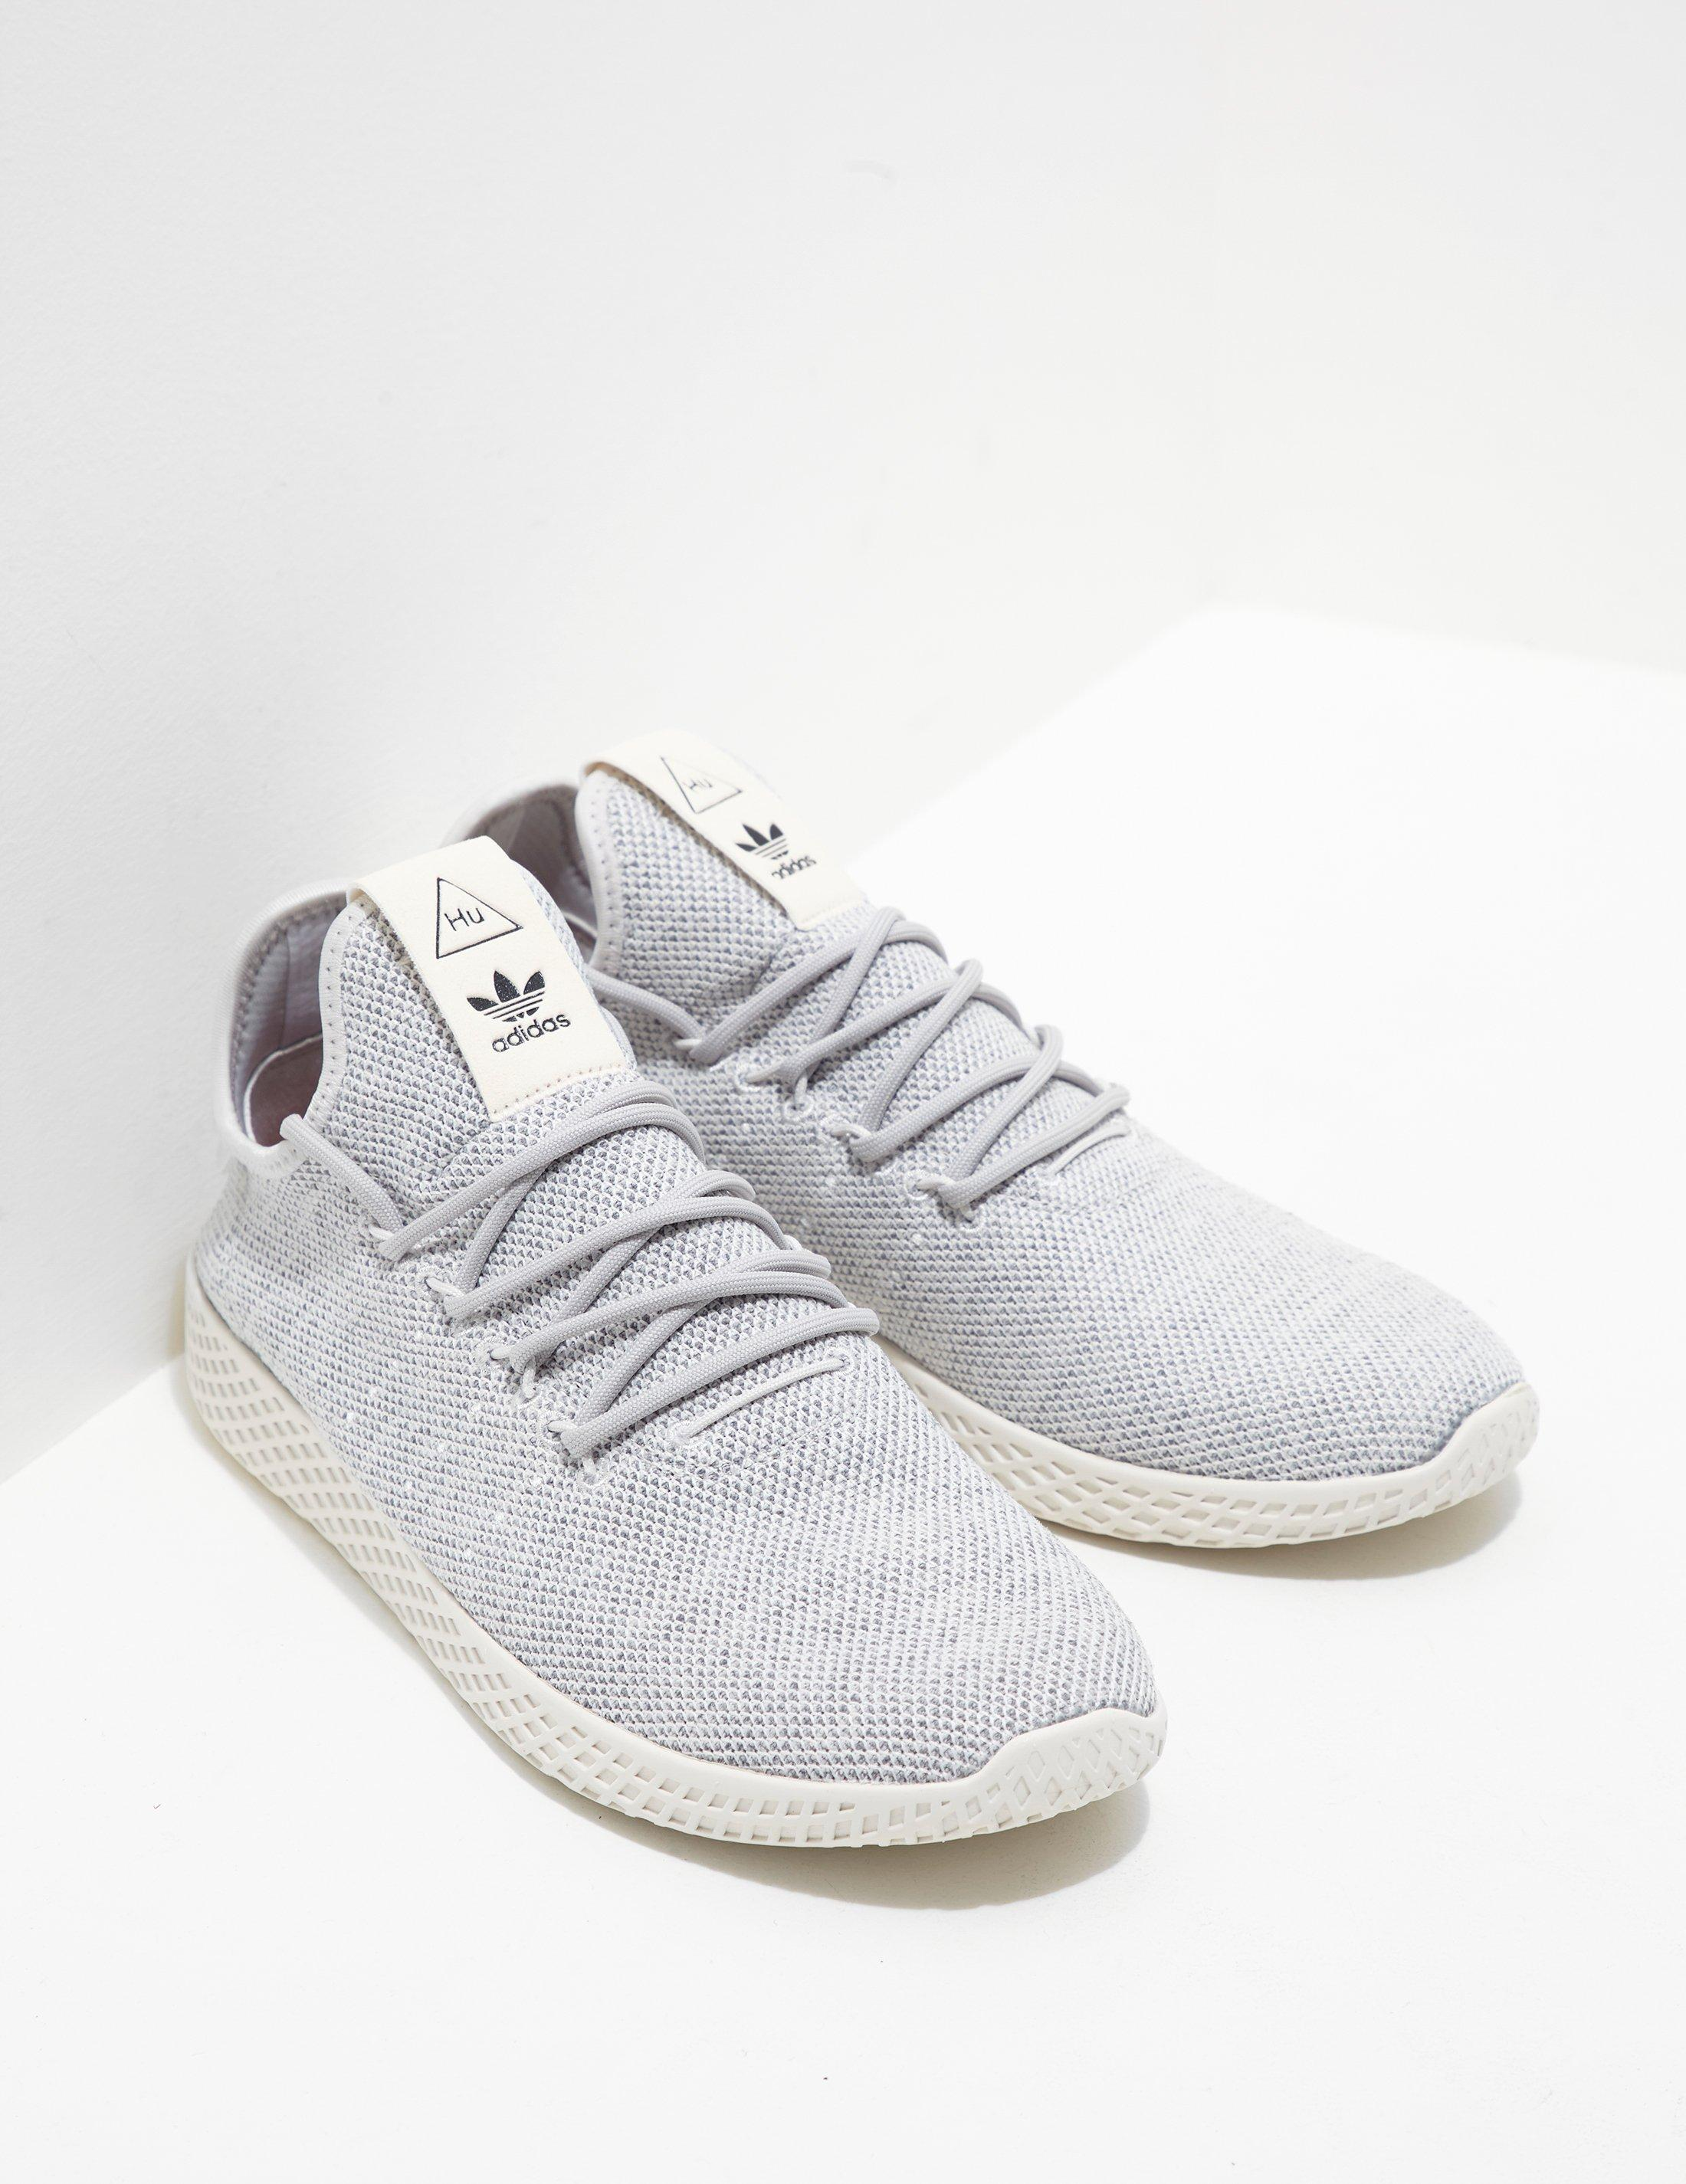 9d5821da2 Lyst - adidas Originals Mens X Pharrell Williams Tennis Hu Primeknit ...